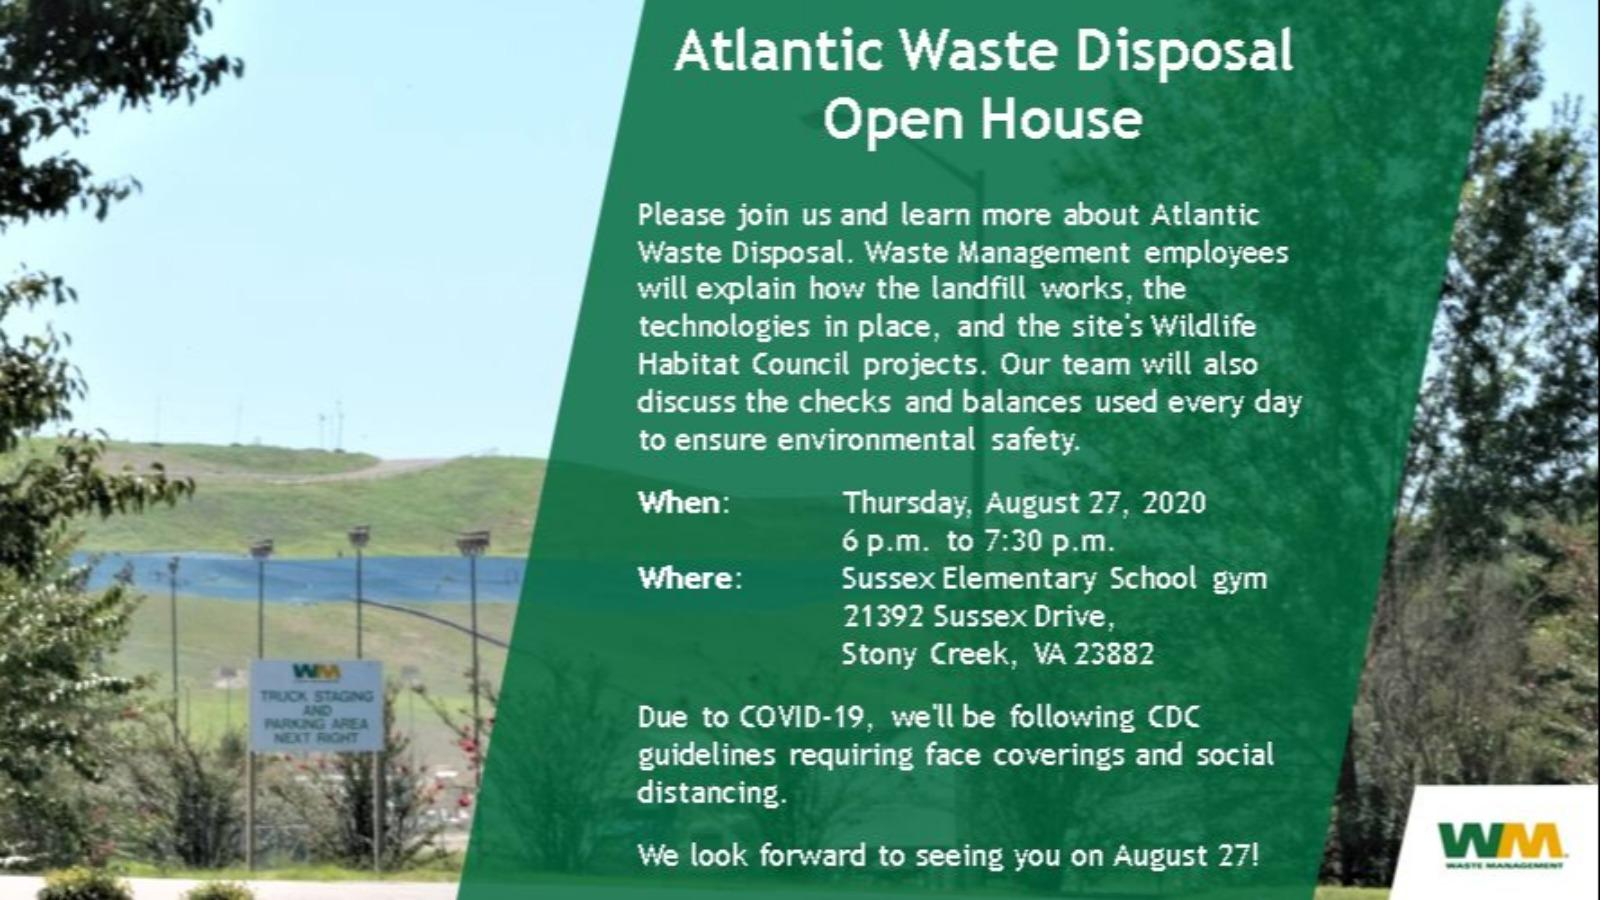 Atlantic Waste Disposal Open House at the Sussex Elementary School Gym